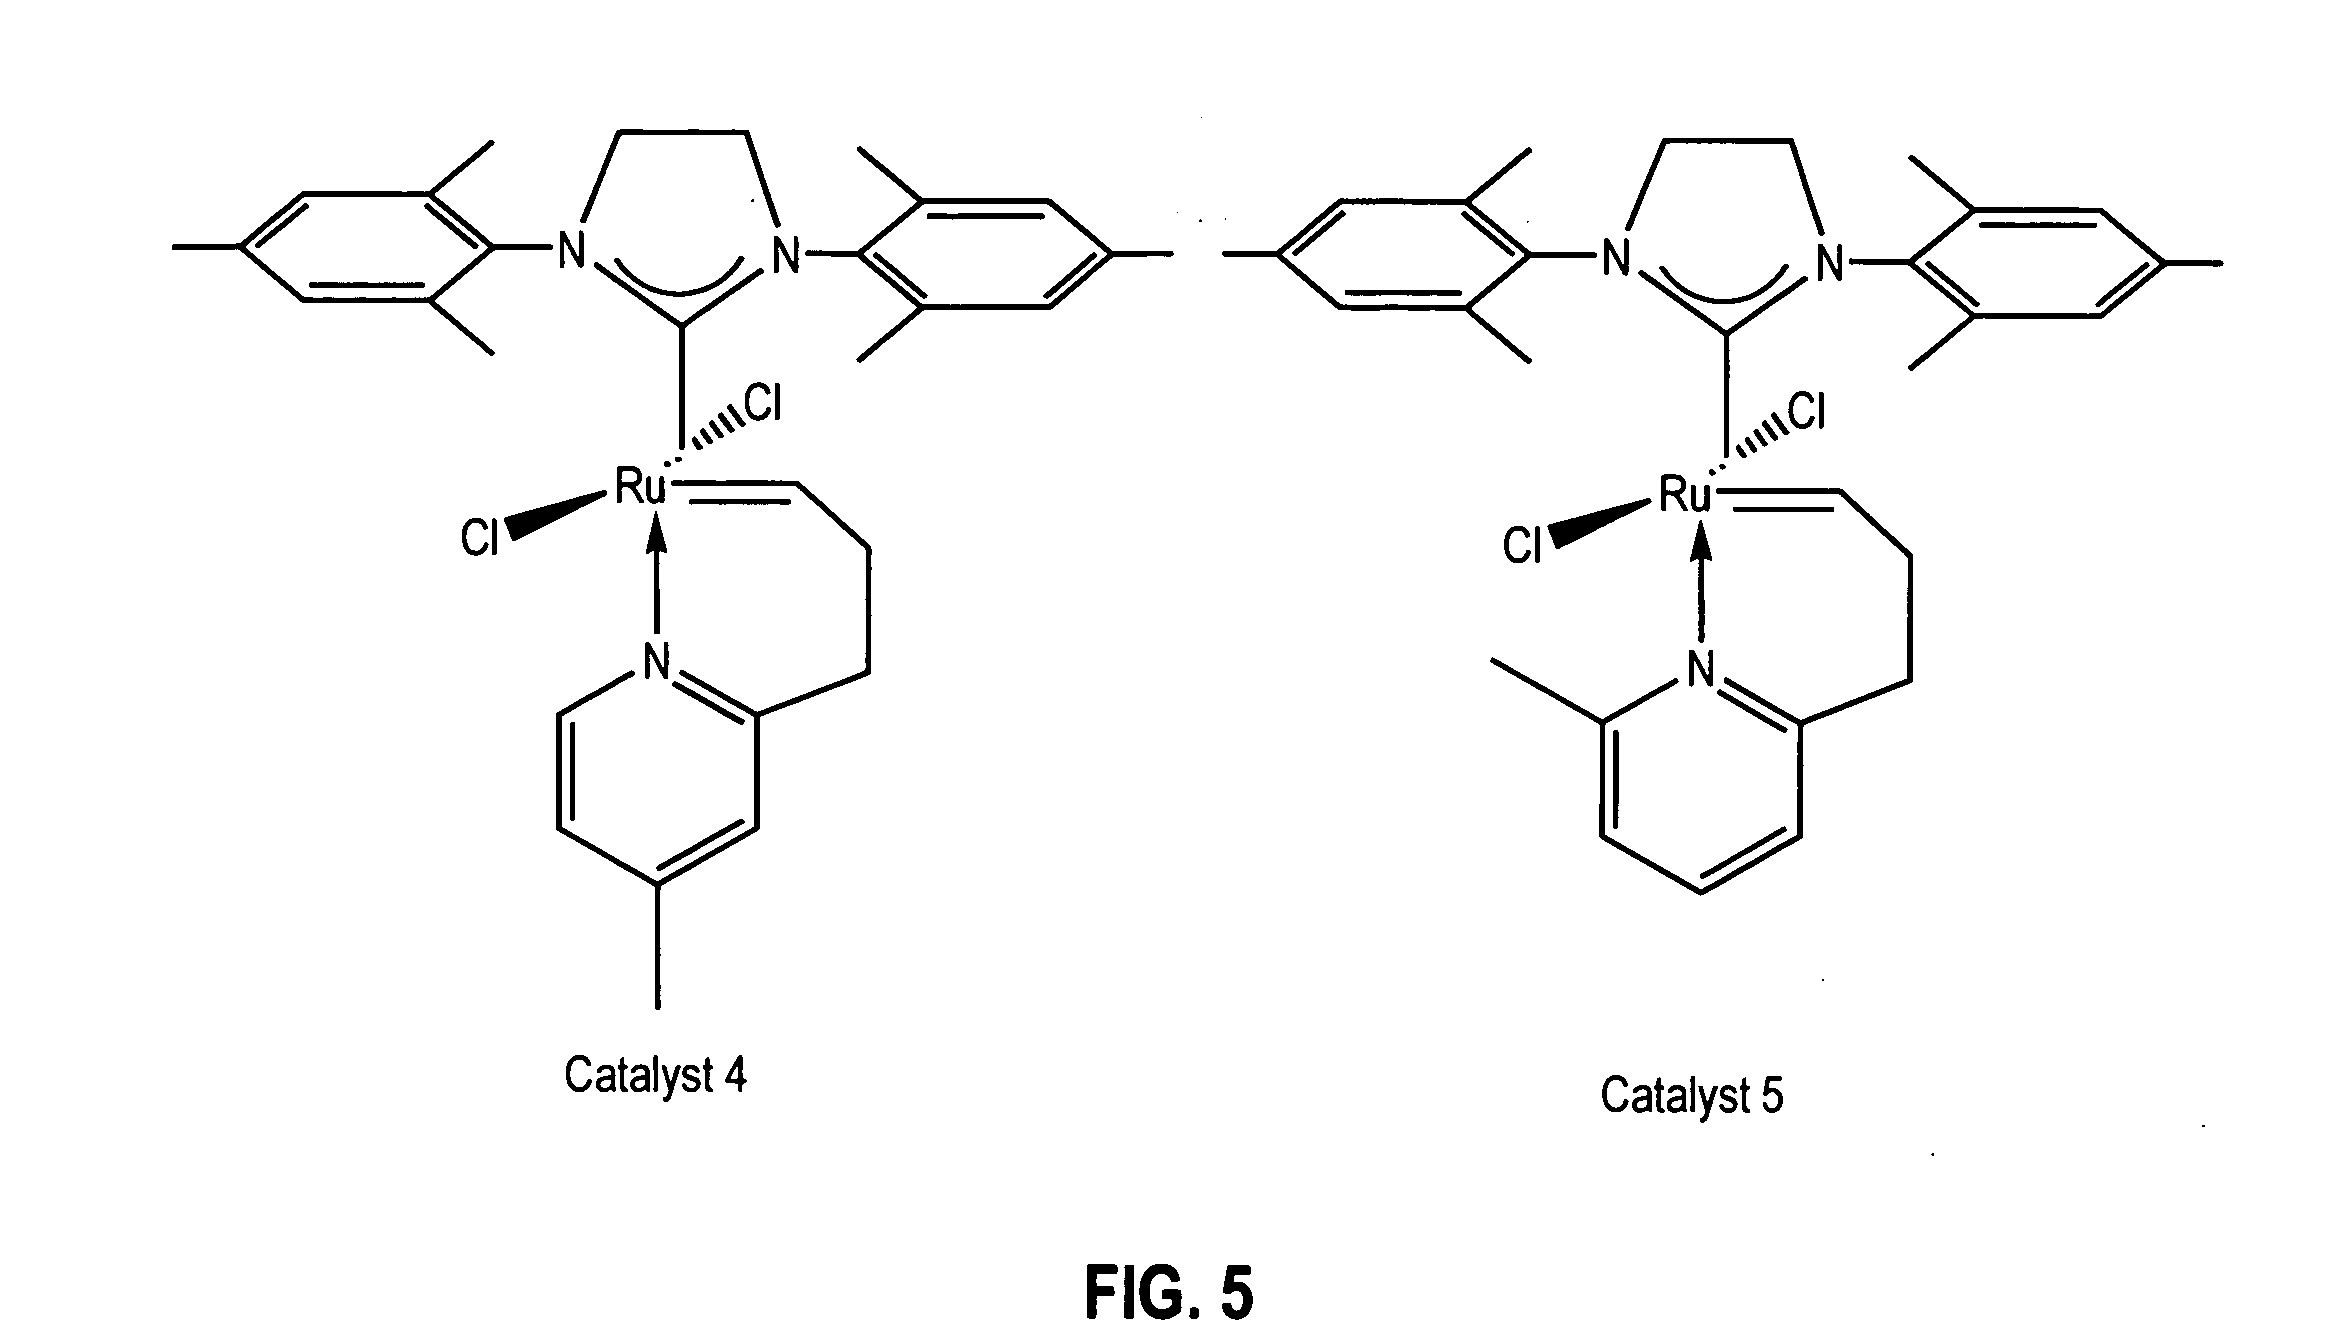 latent olefin metathesis catalysts These olefin metathesis reactions entail ring opening metathesis polymerization (romp), cross-metathesis (cm) and ring closing metathesis (rcm), thereby making the catalysts interesting targets even beyond polymer chemistry.